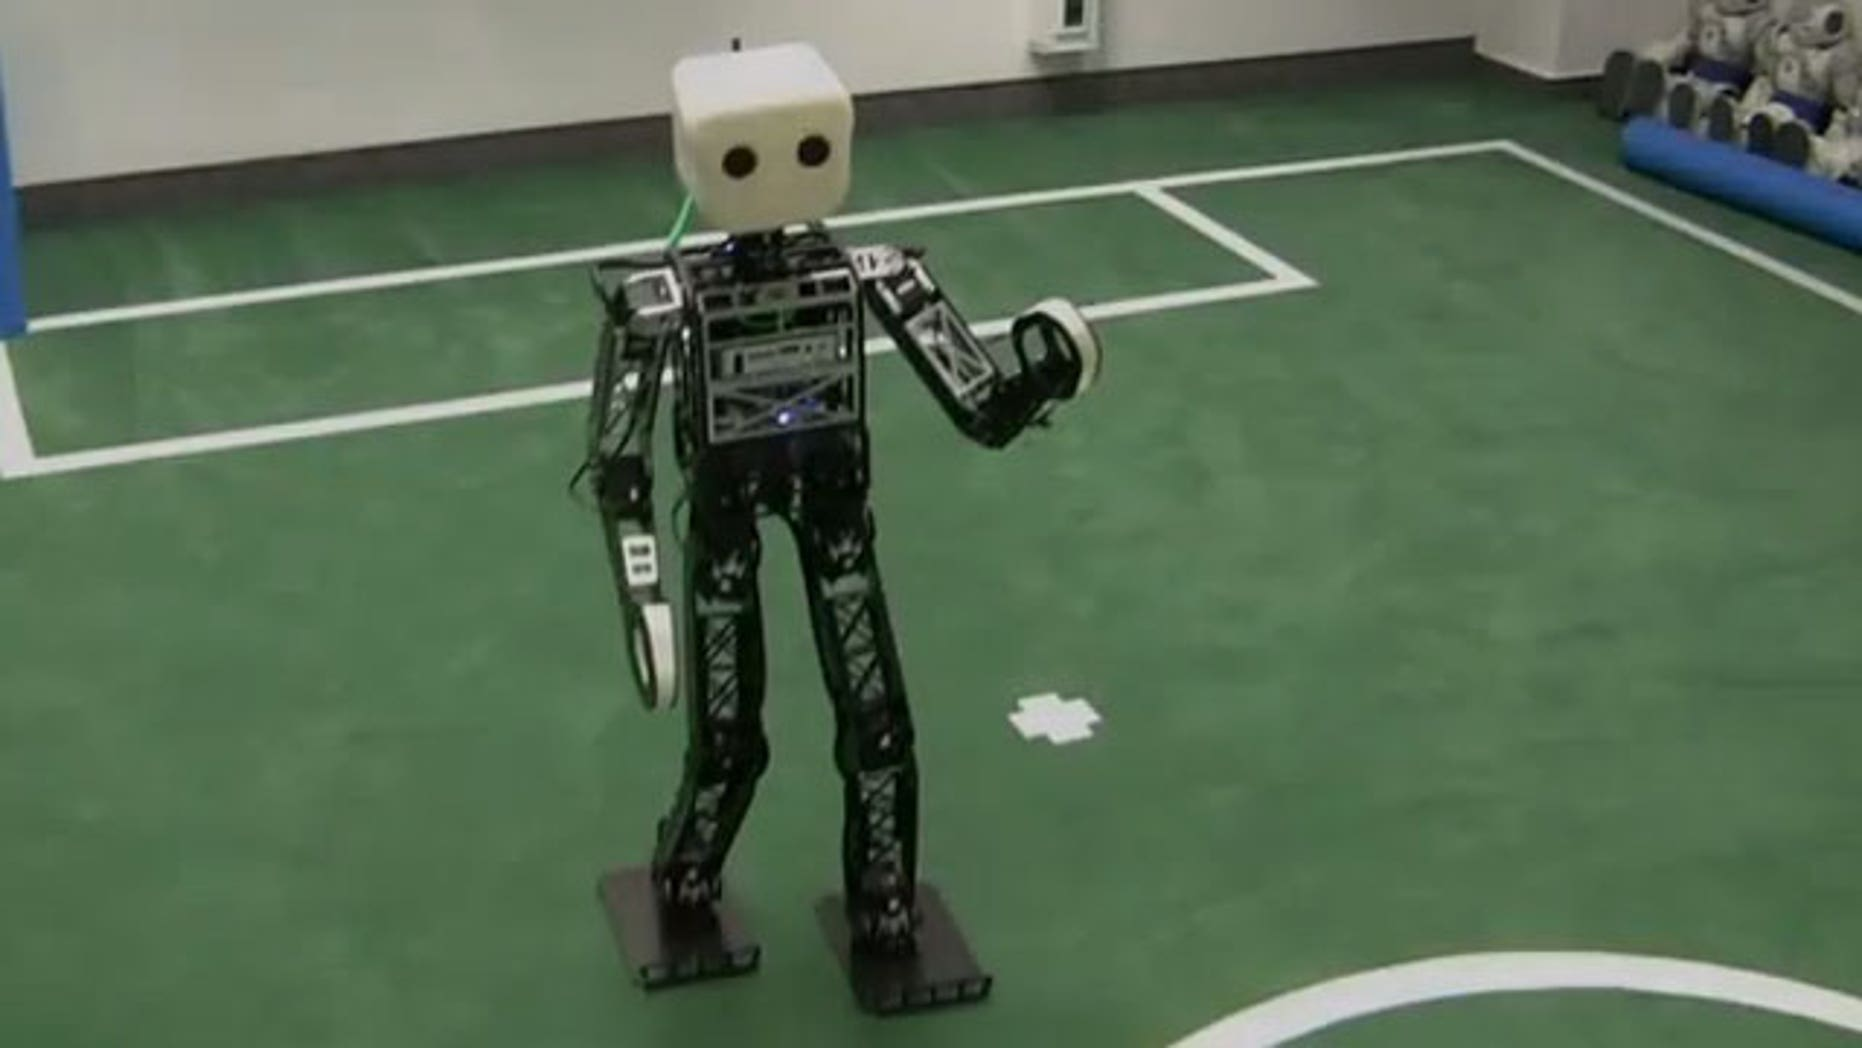 The NimbRo is the reigning world champion in robot soccer.